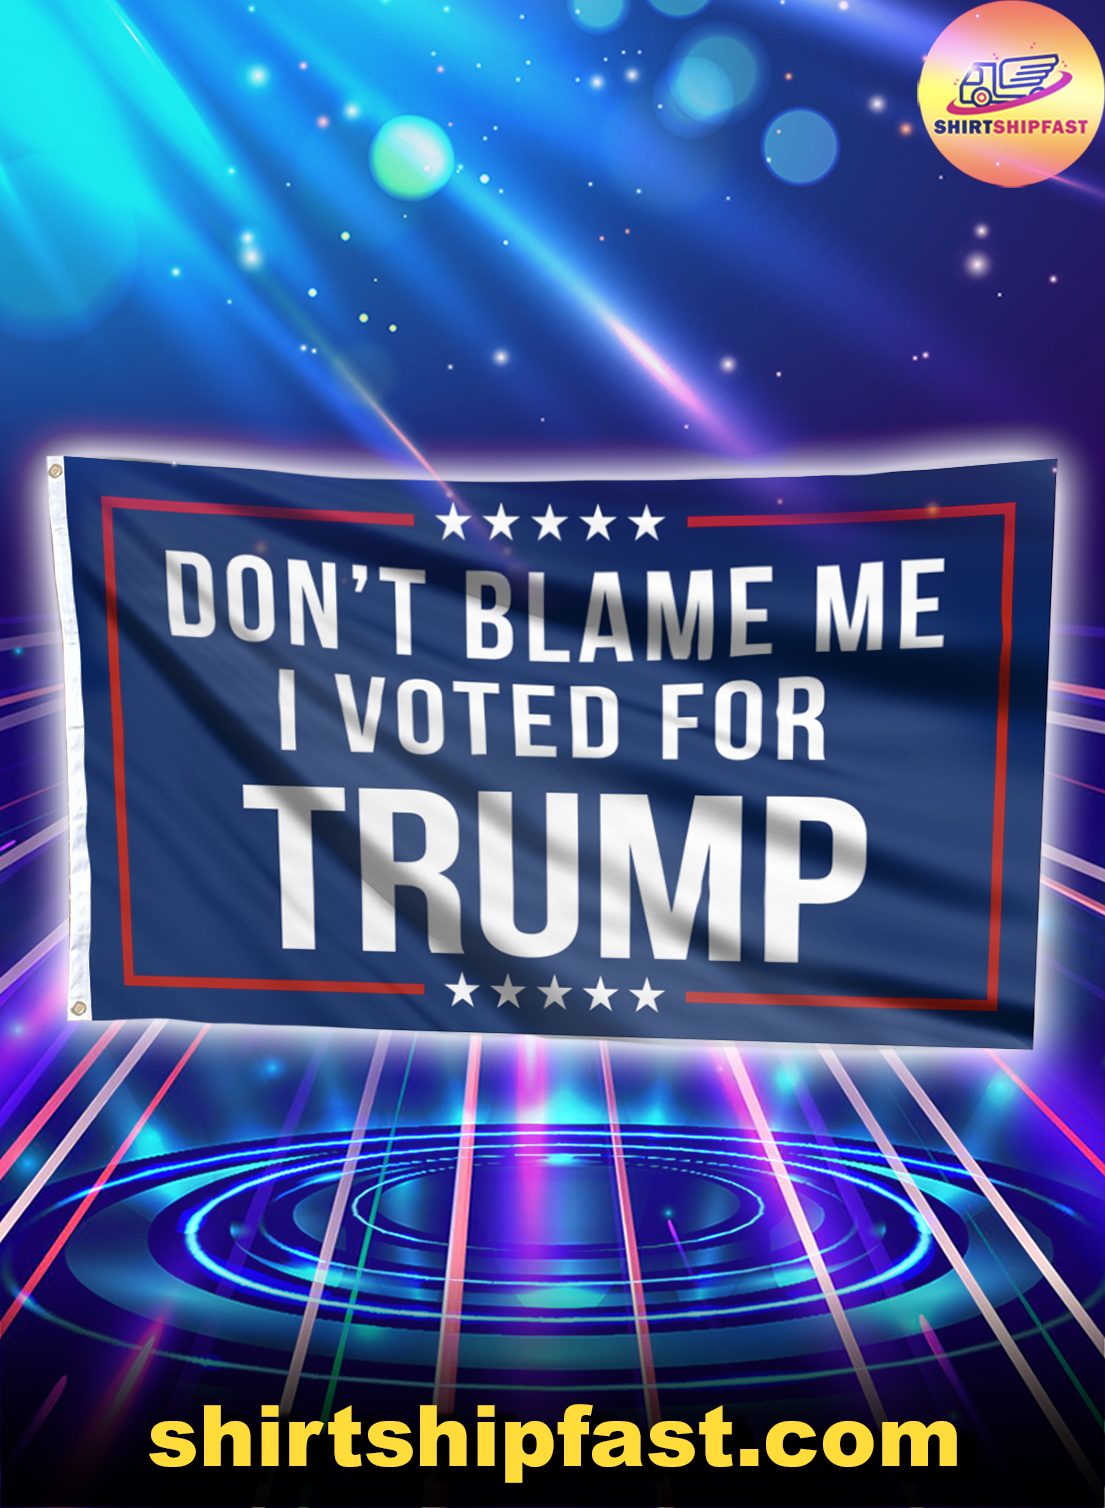 Don't blame me I voted for Trump Flag - House and Garden Flag - Picture 1